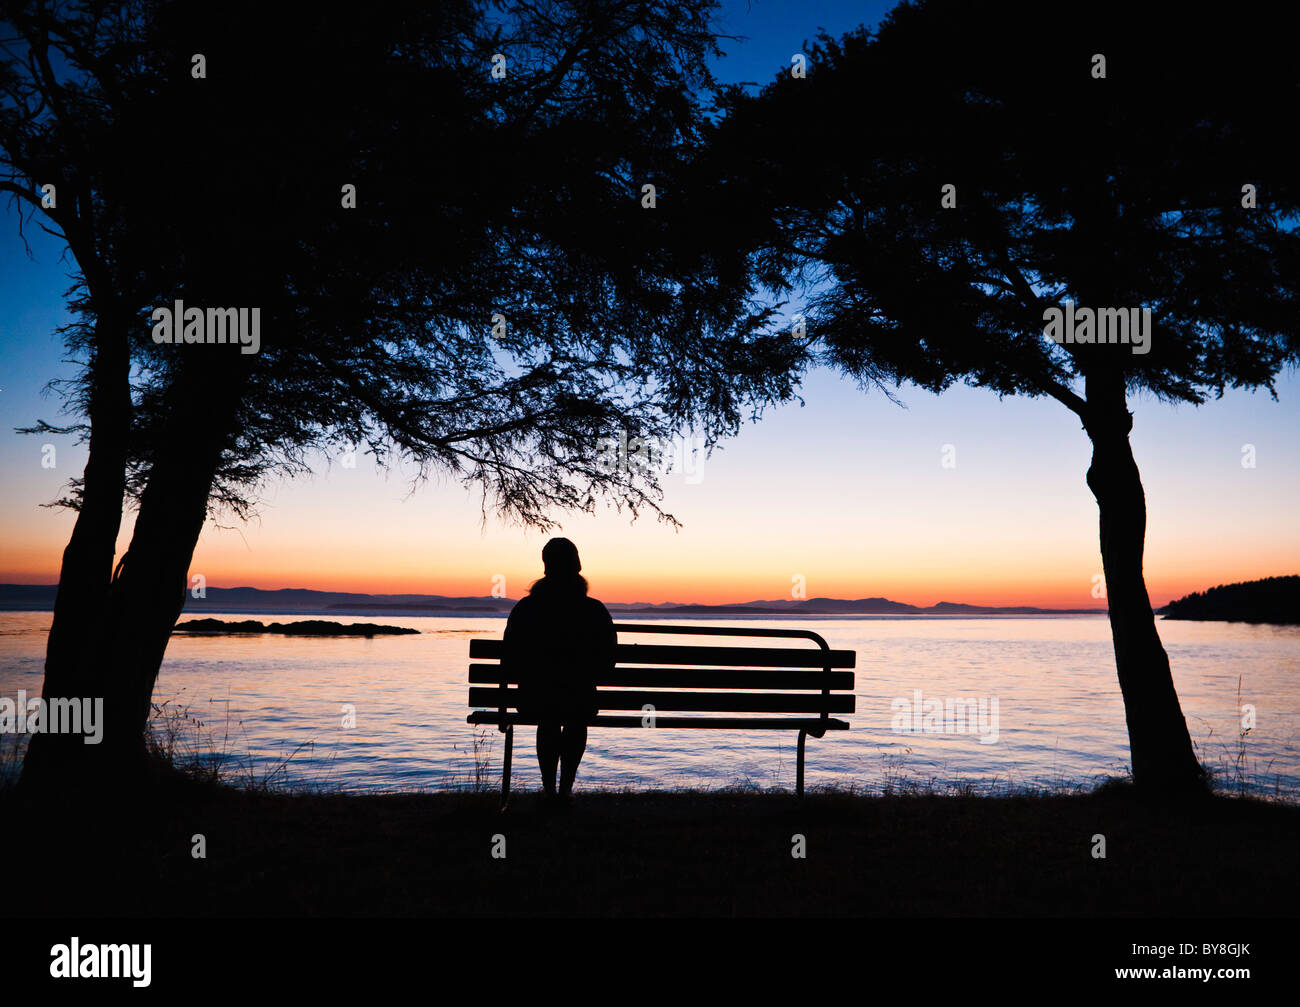 A woman sitting alone on a park bench overlooking a body of water at sunset. - Stock Image